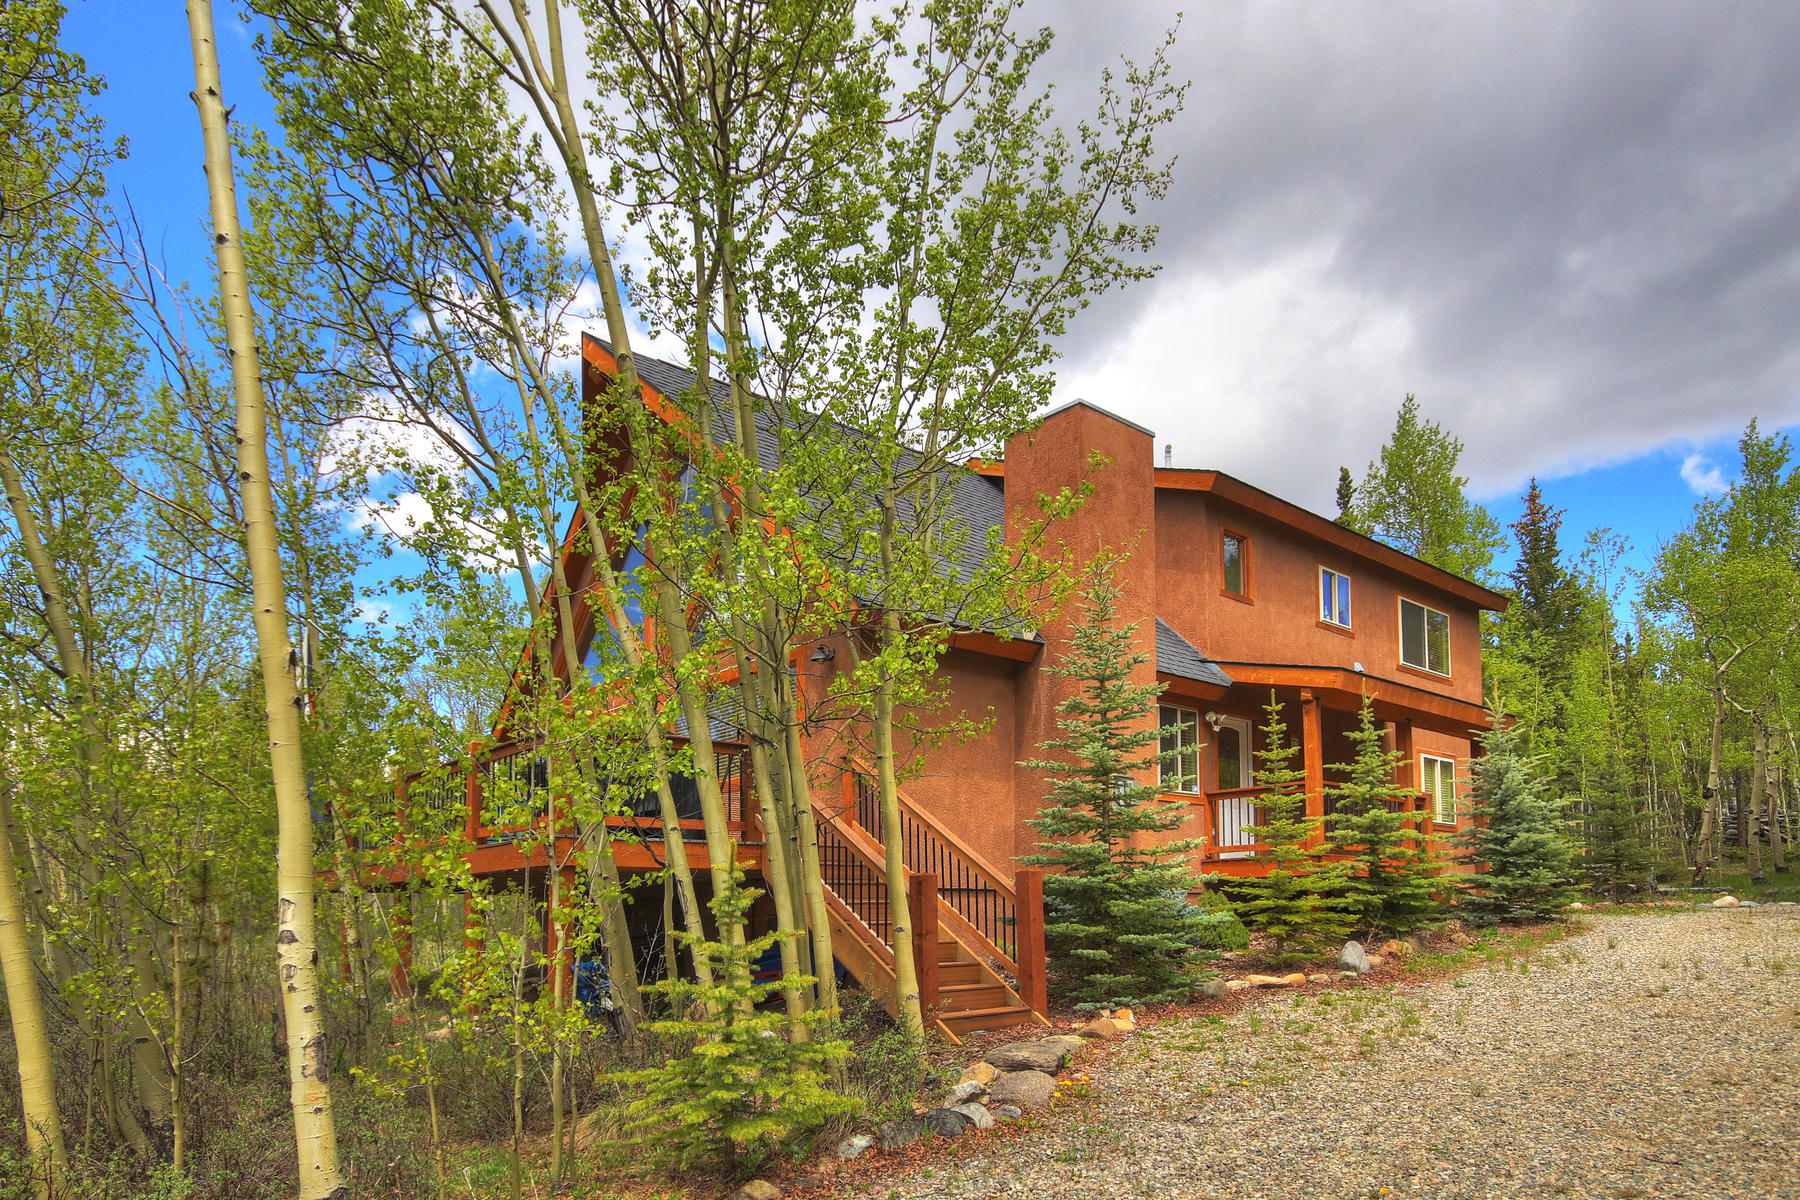 Single Family Homes for Sale at The Perfect Cabin in the Woods 57 Muhly Court Fairplay, Colorado 80440 United States